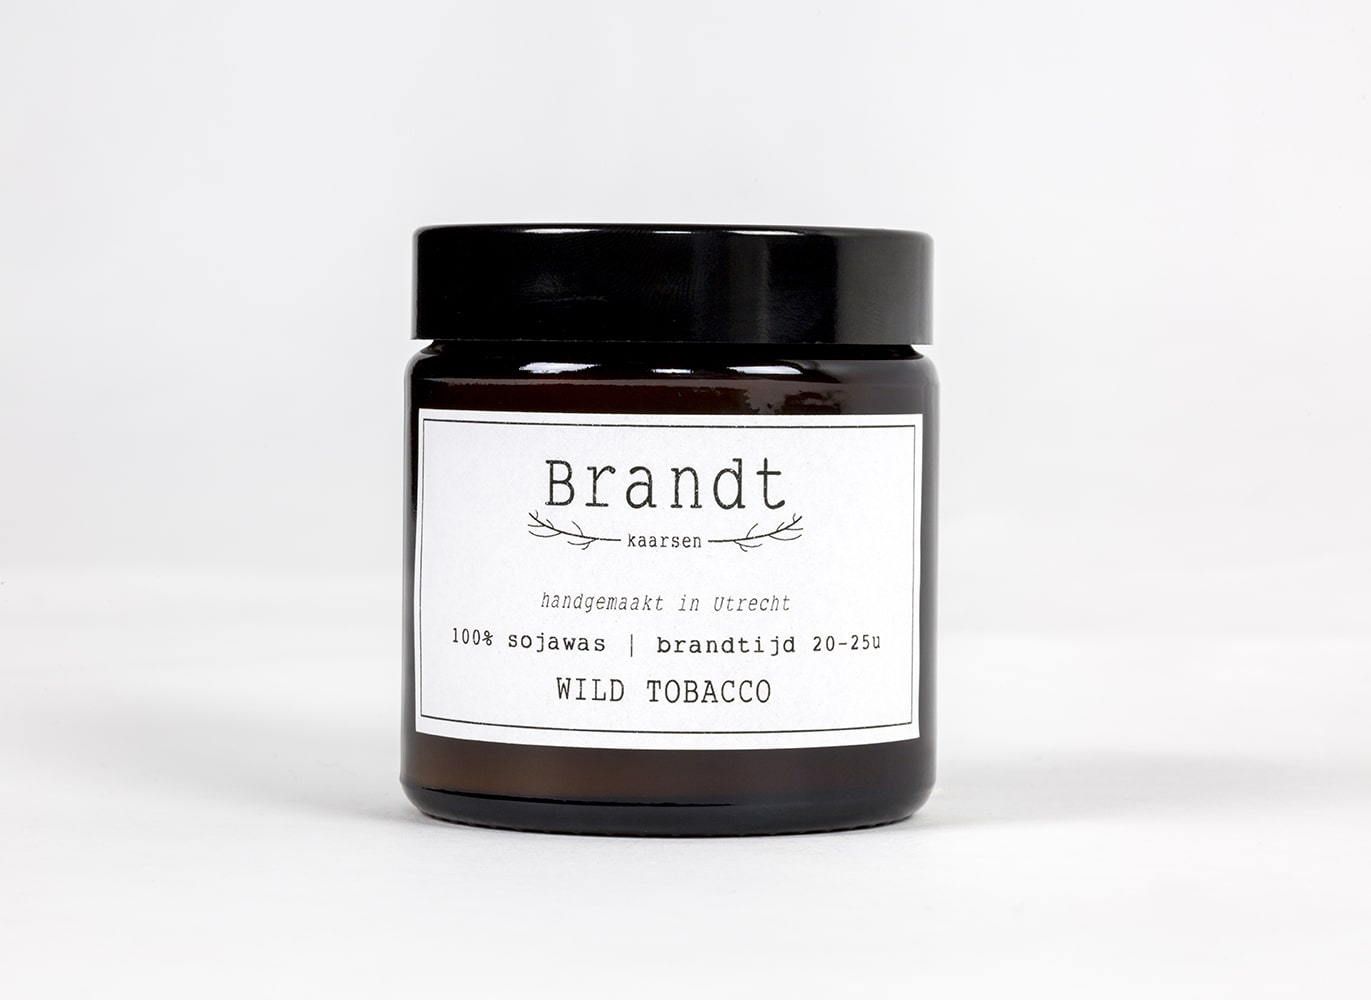 Apothecary candle by Brandt - wild tobacco